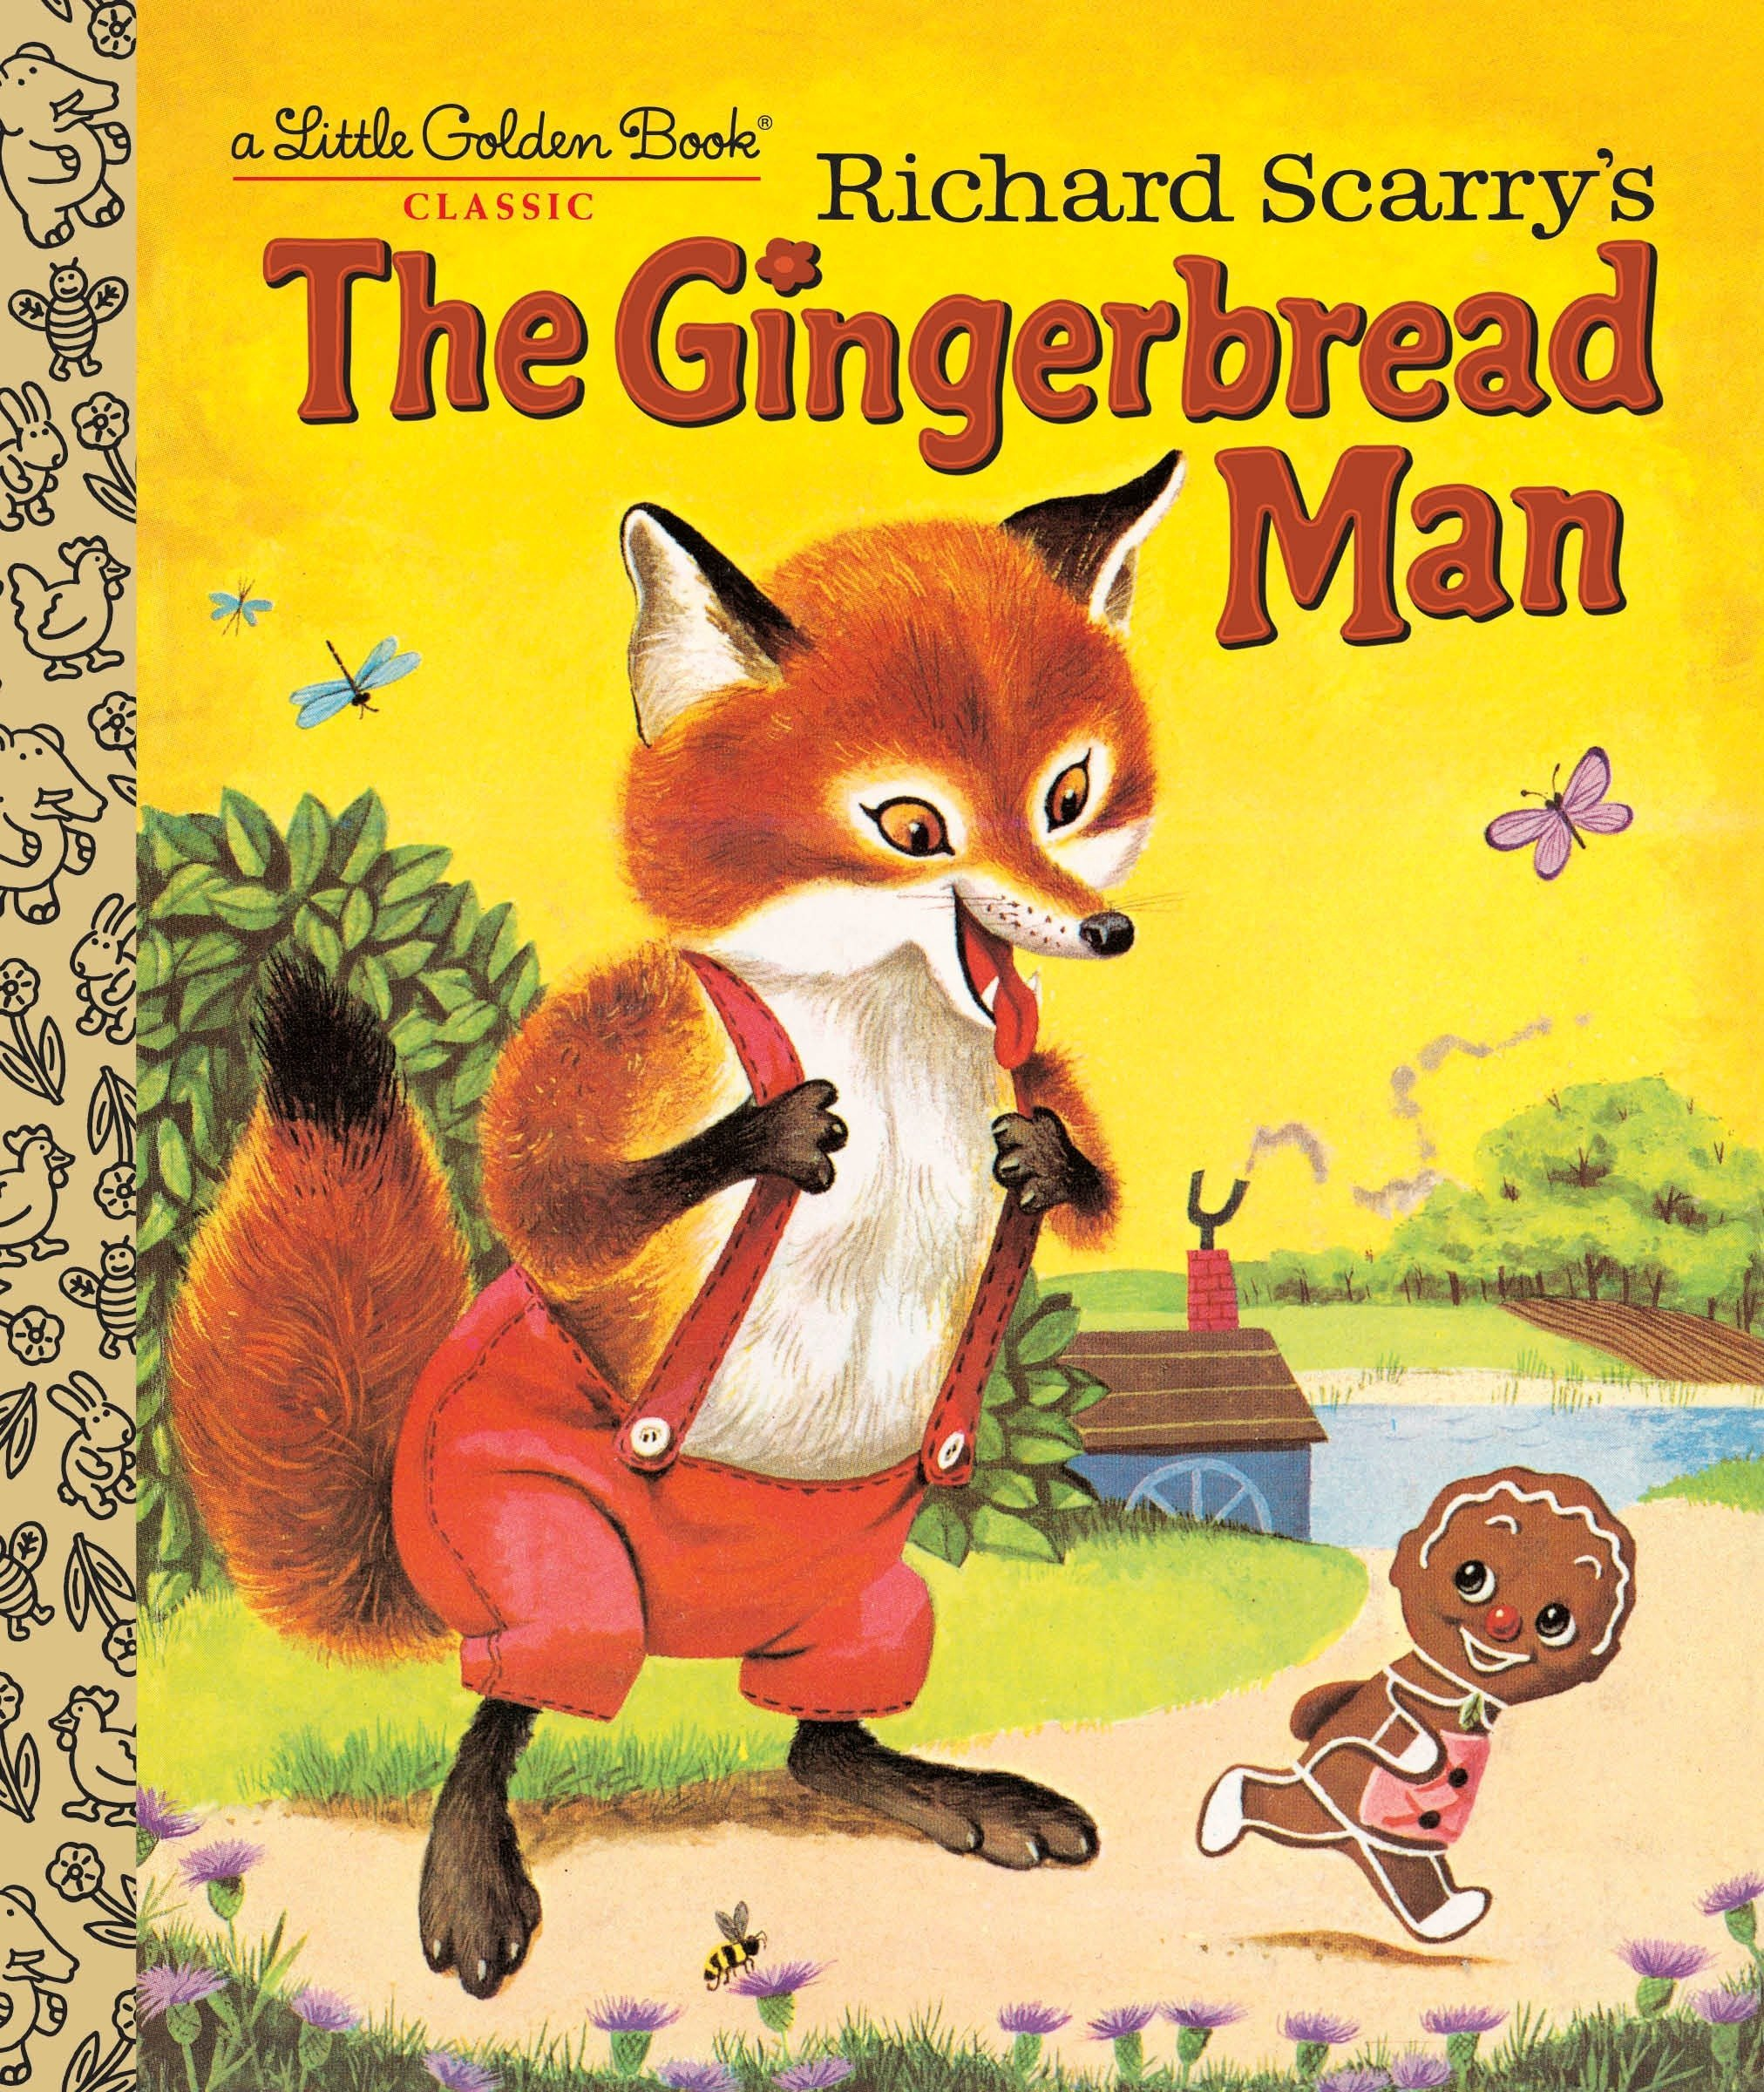 Richard Scarry's The Gingerbread Man (Little Golden Book) pdf